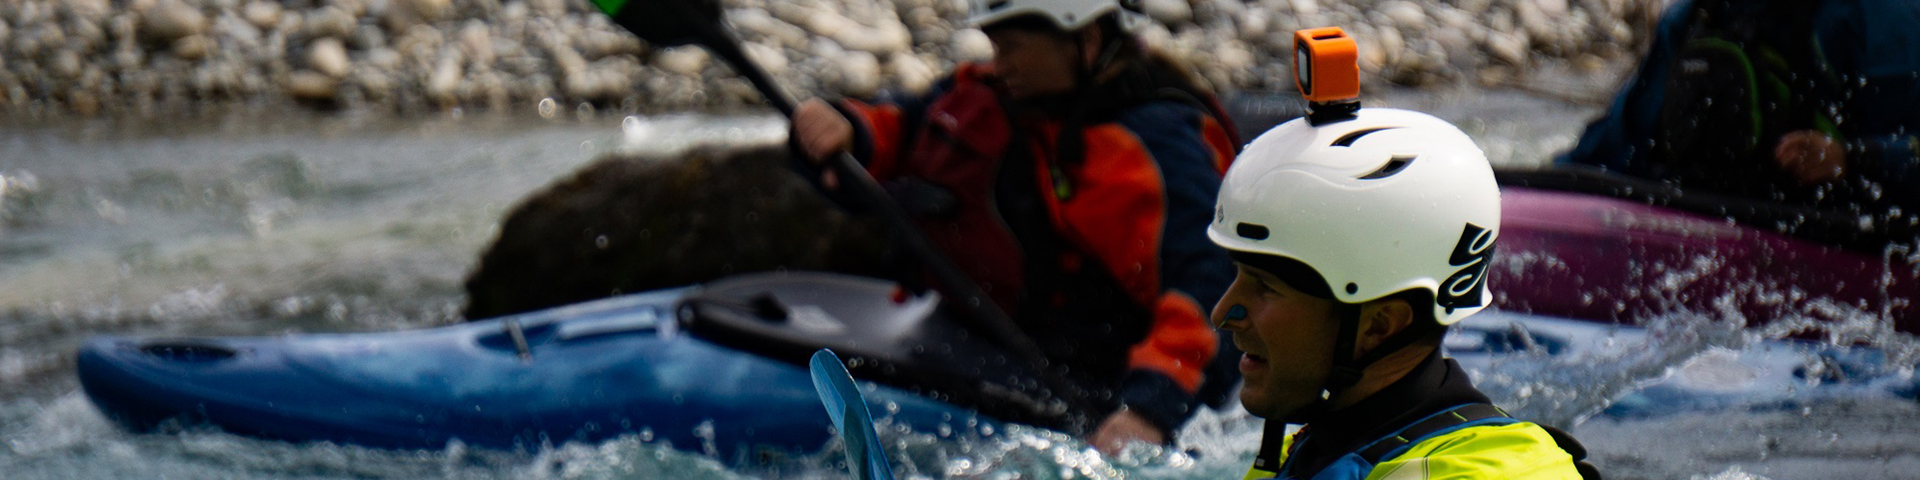 FIVE DAY WHITEWATER KAYAKING COURSE by Aquabatics - Image 409